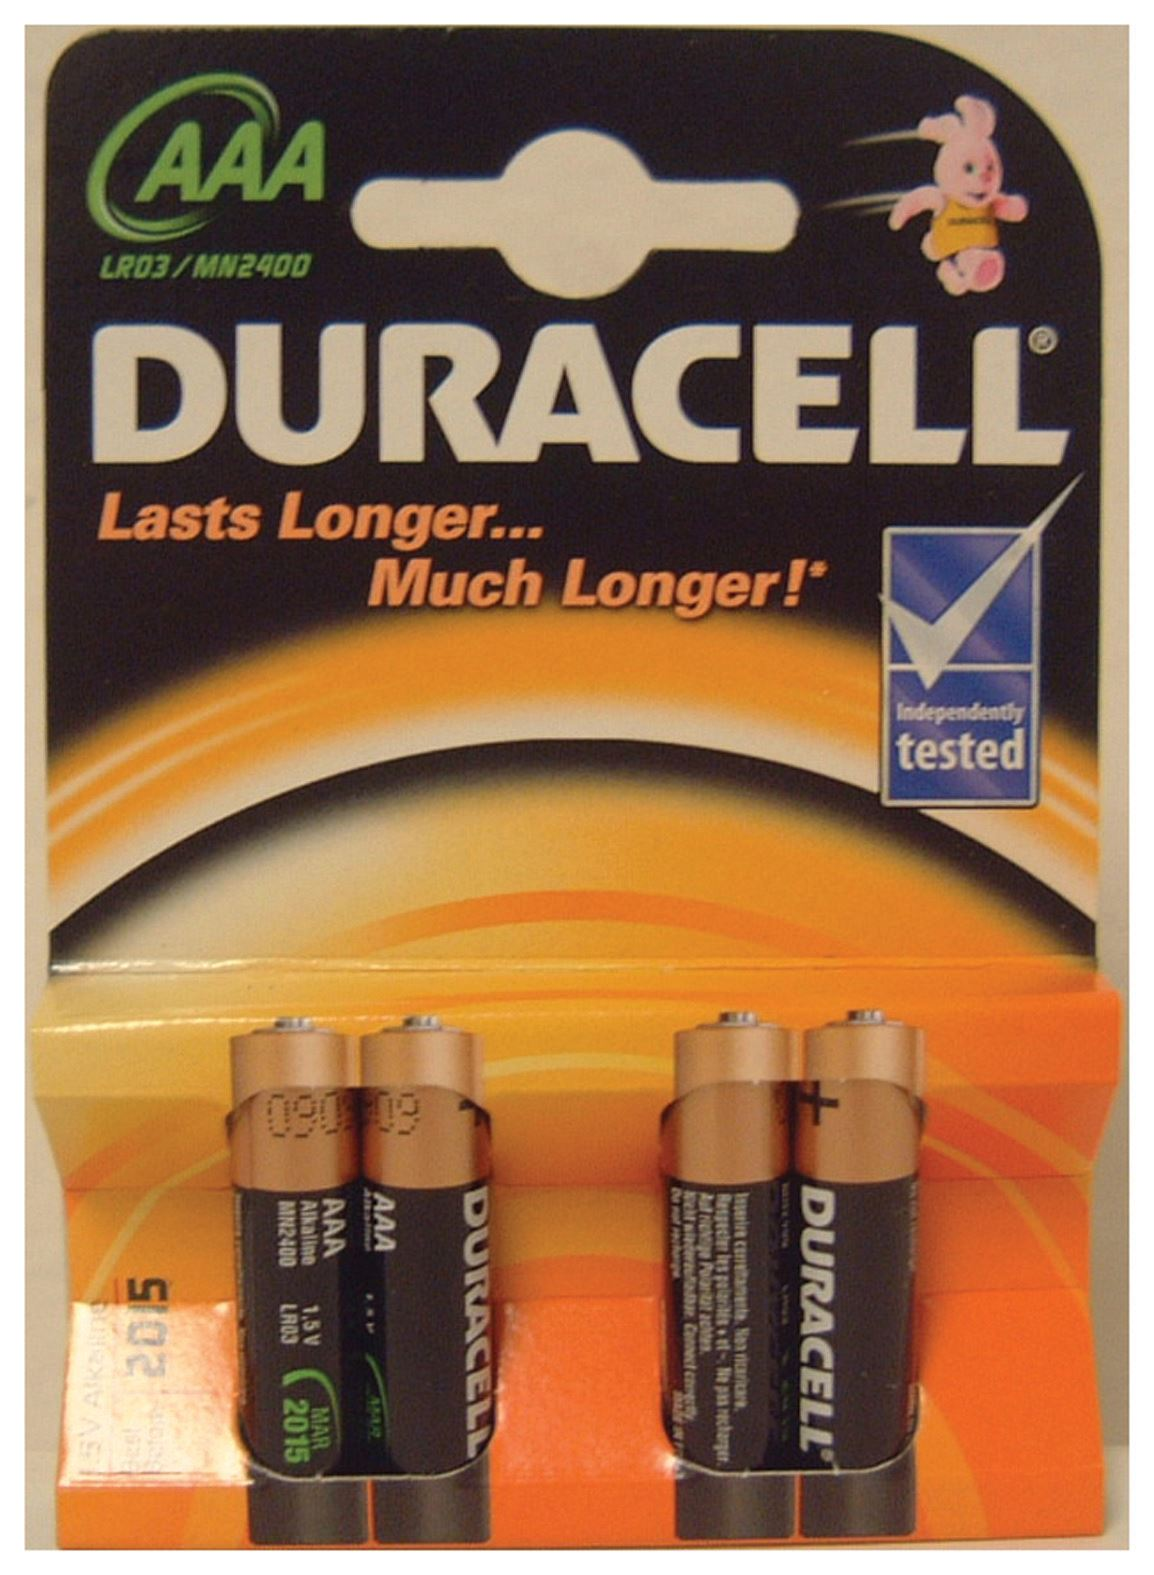 duracell alkaline batteries type aaa packing 4 p012bbe ebay. Black Bedroom Furniture Sets. Home Design Ideas